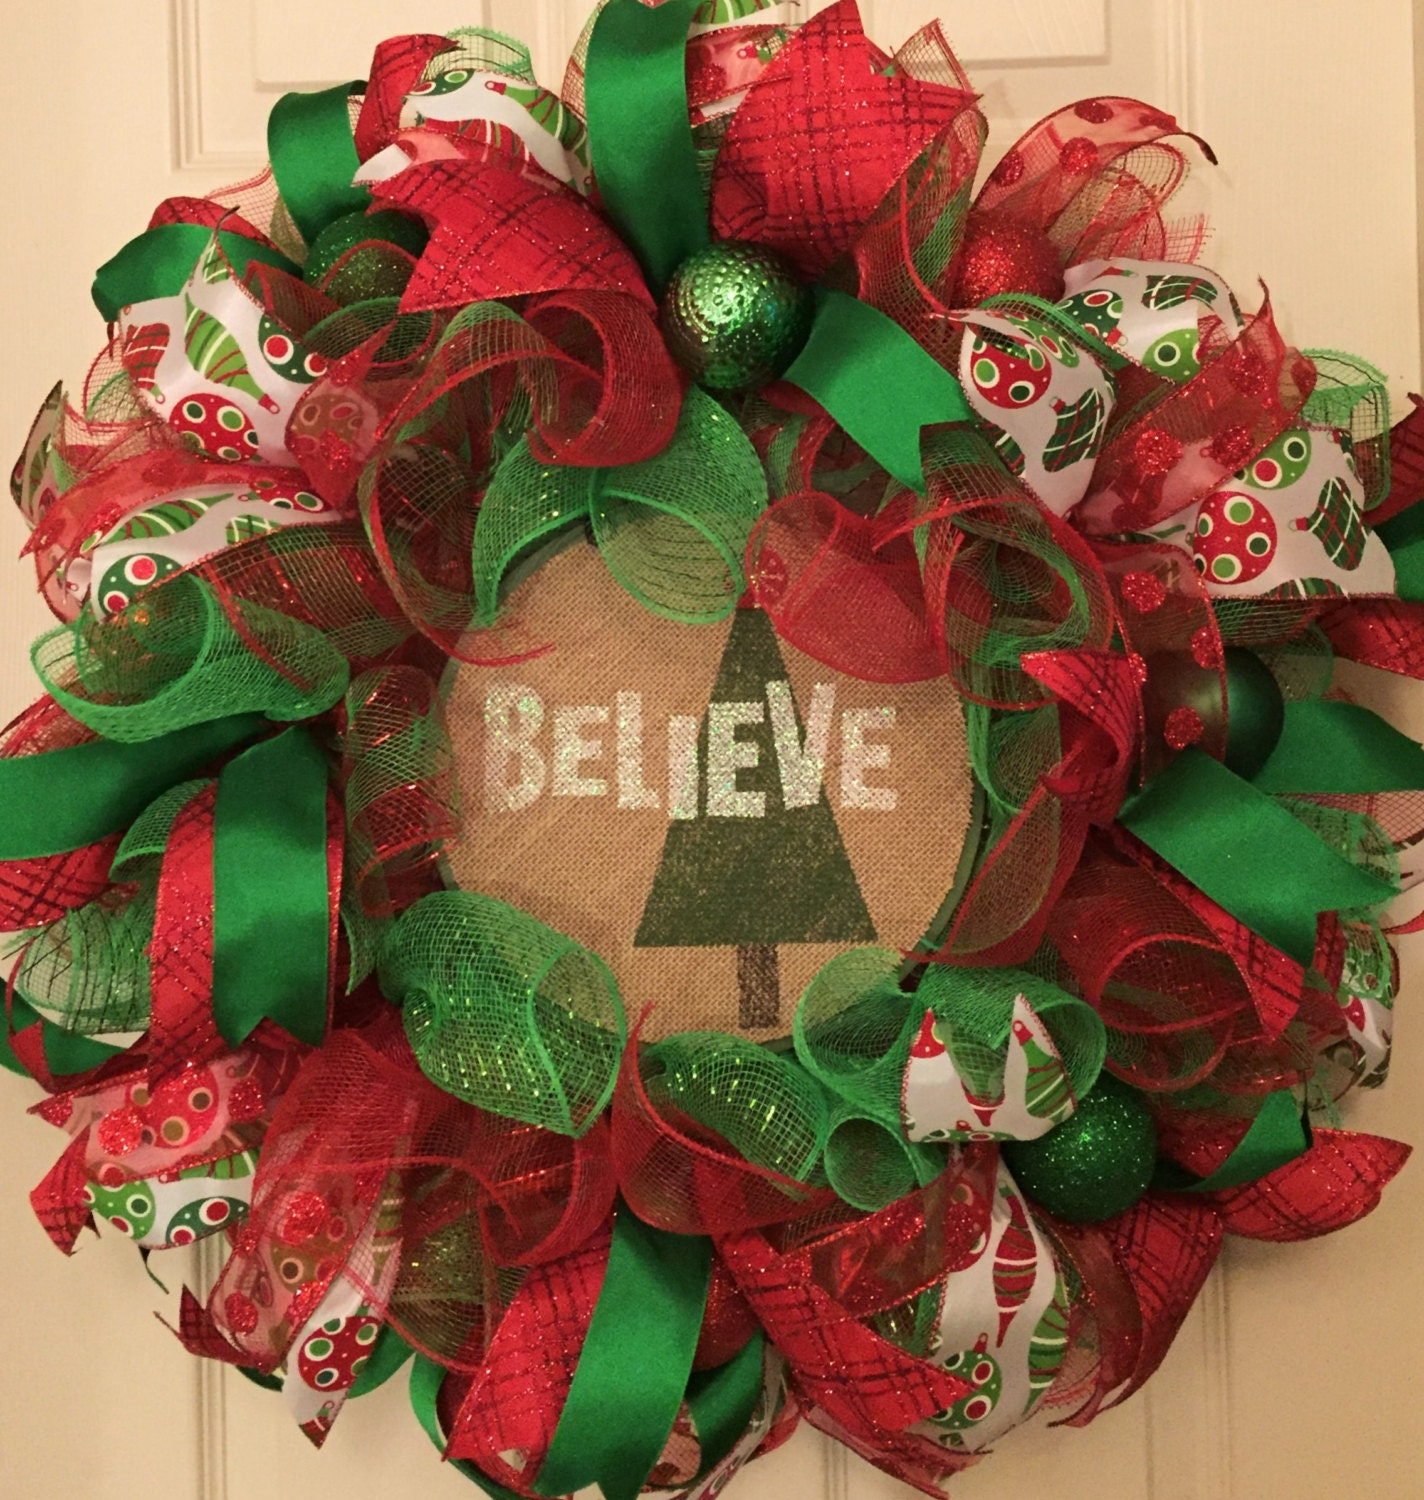 Believe Ruffle Mesh Christmas Wreath Holiday Wreath Deco